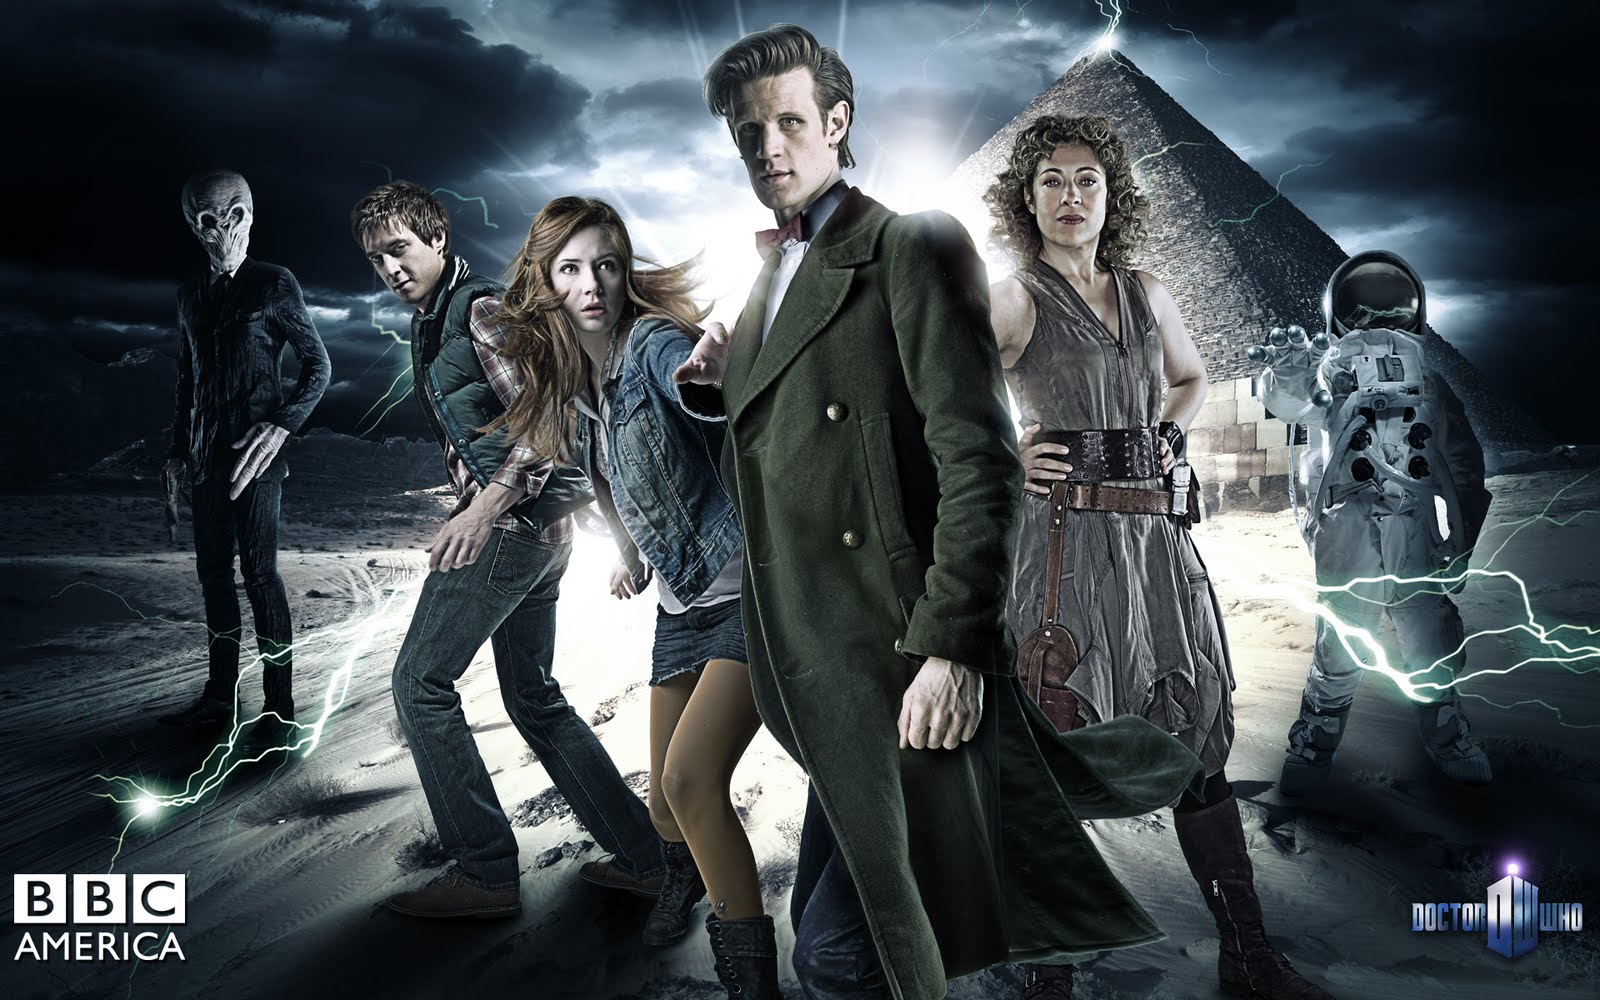 Free Download Doctor Who Next Month Bbc America Have Revealed This